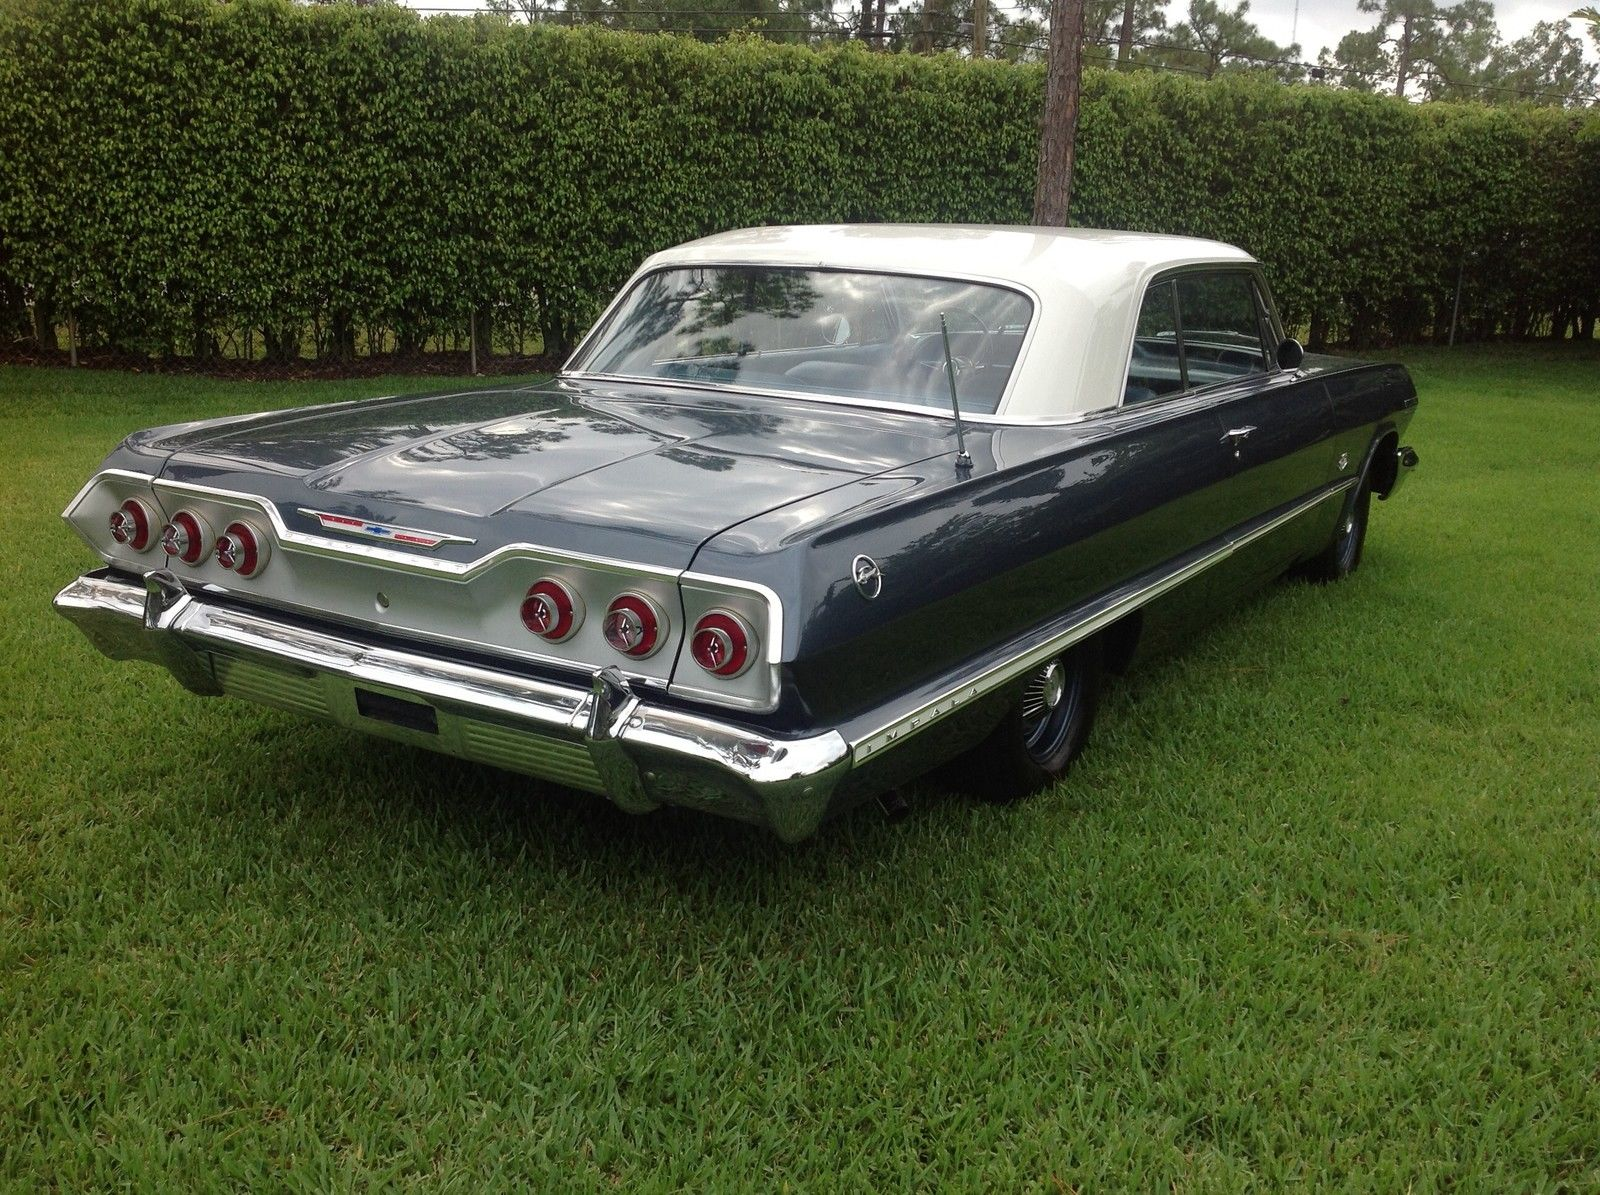 1963 Impala Sport Coupe - 409 blue 04